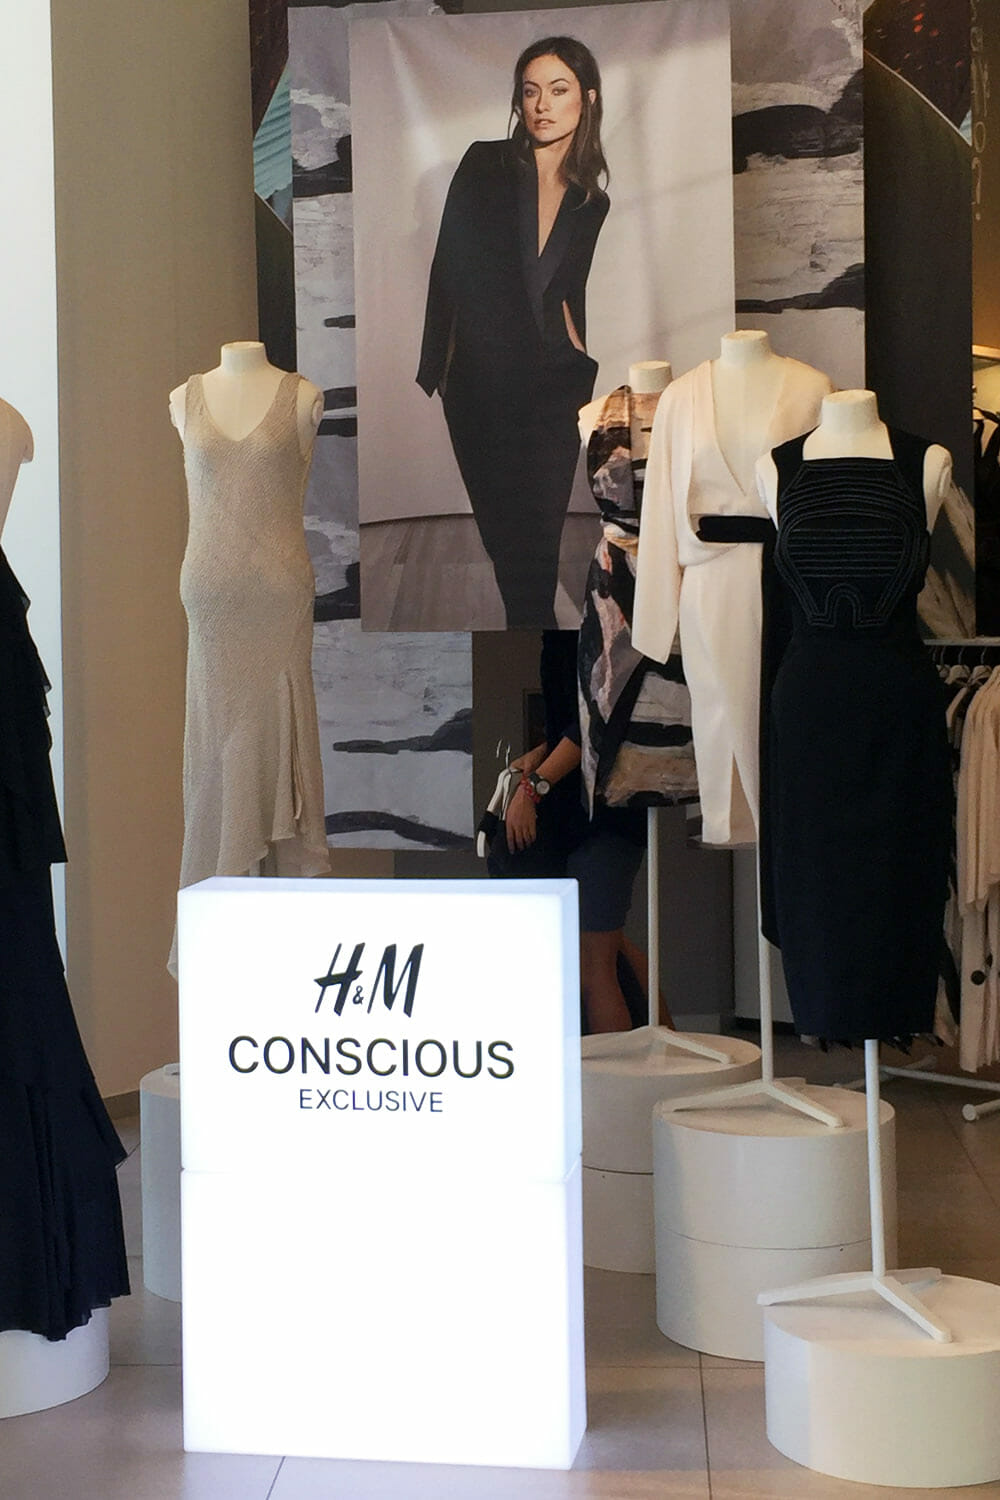 H&M conscious collection to make eco friendly clothing fashion